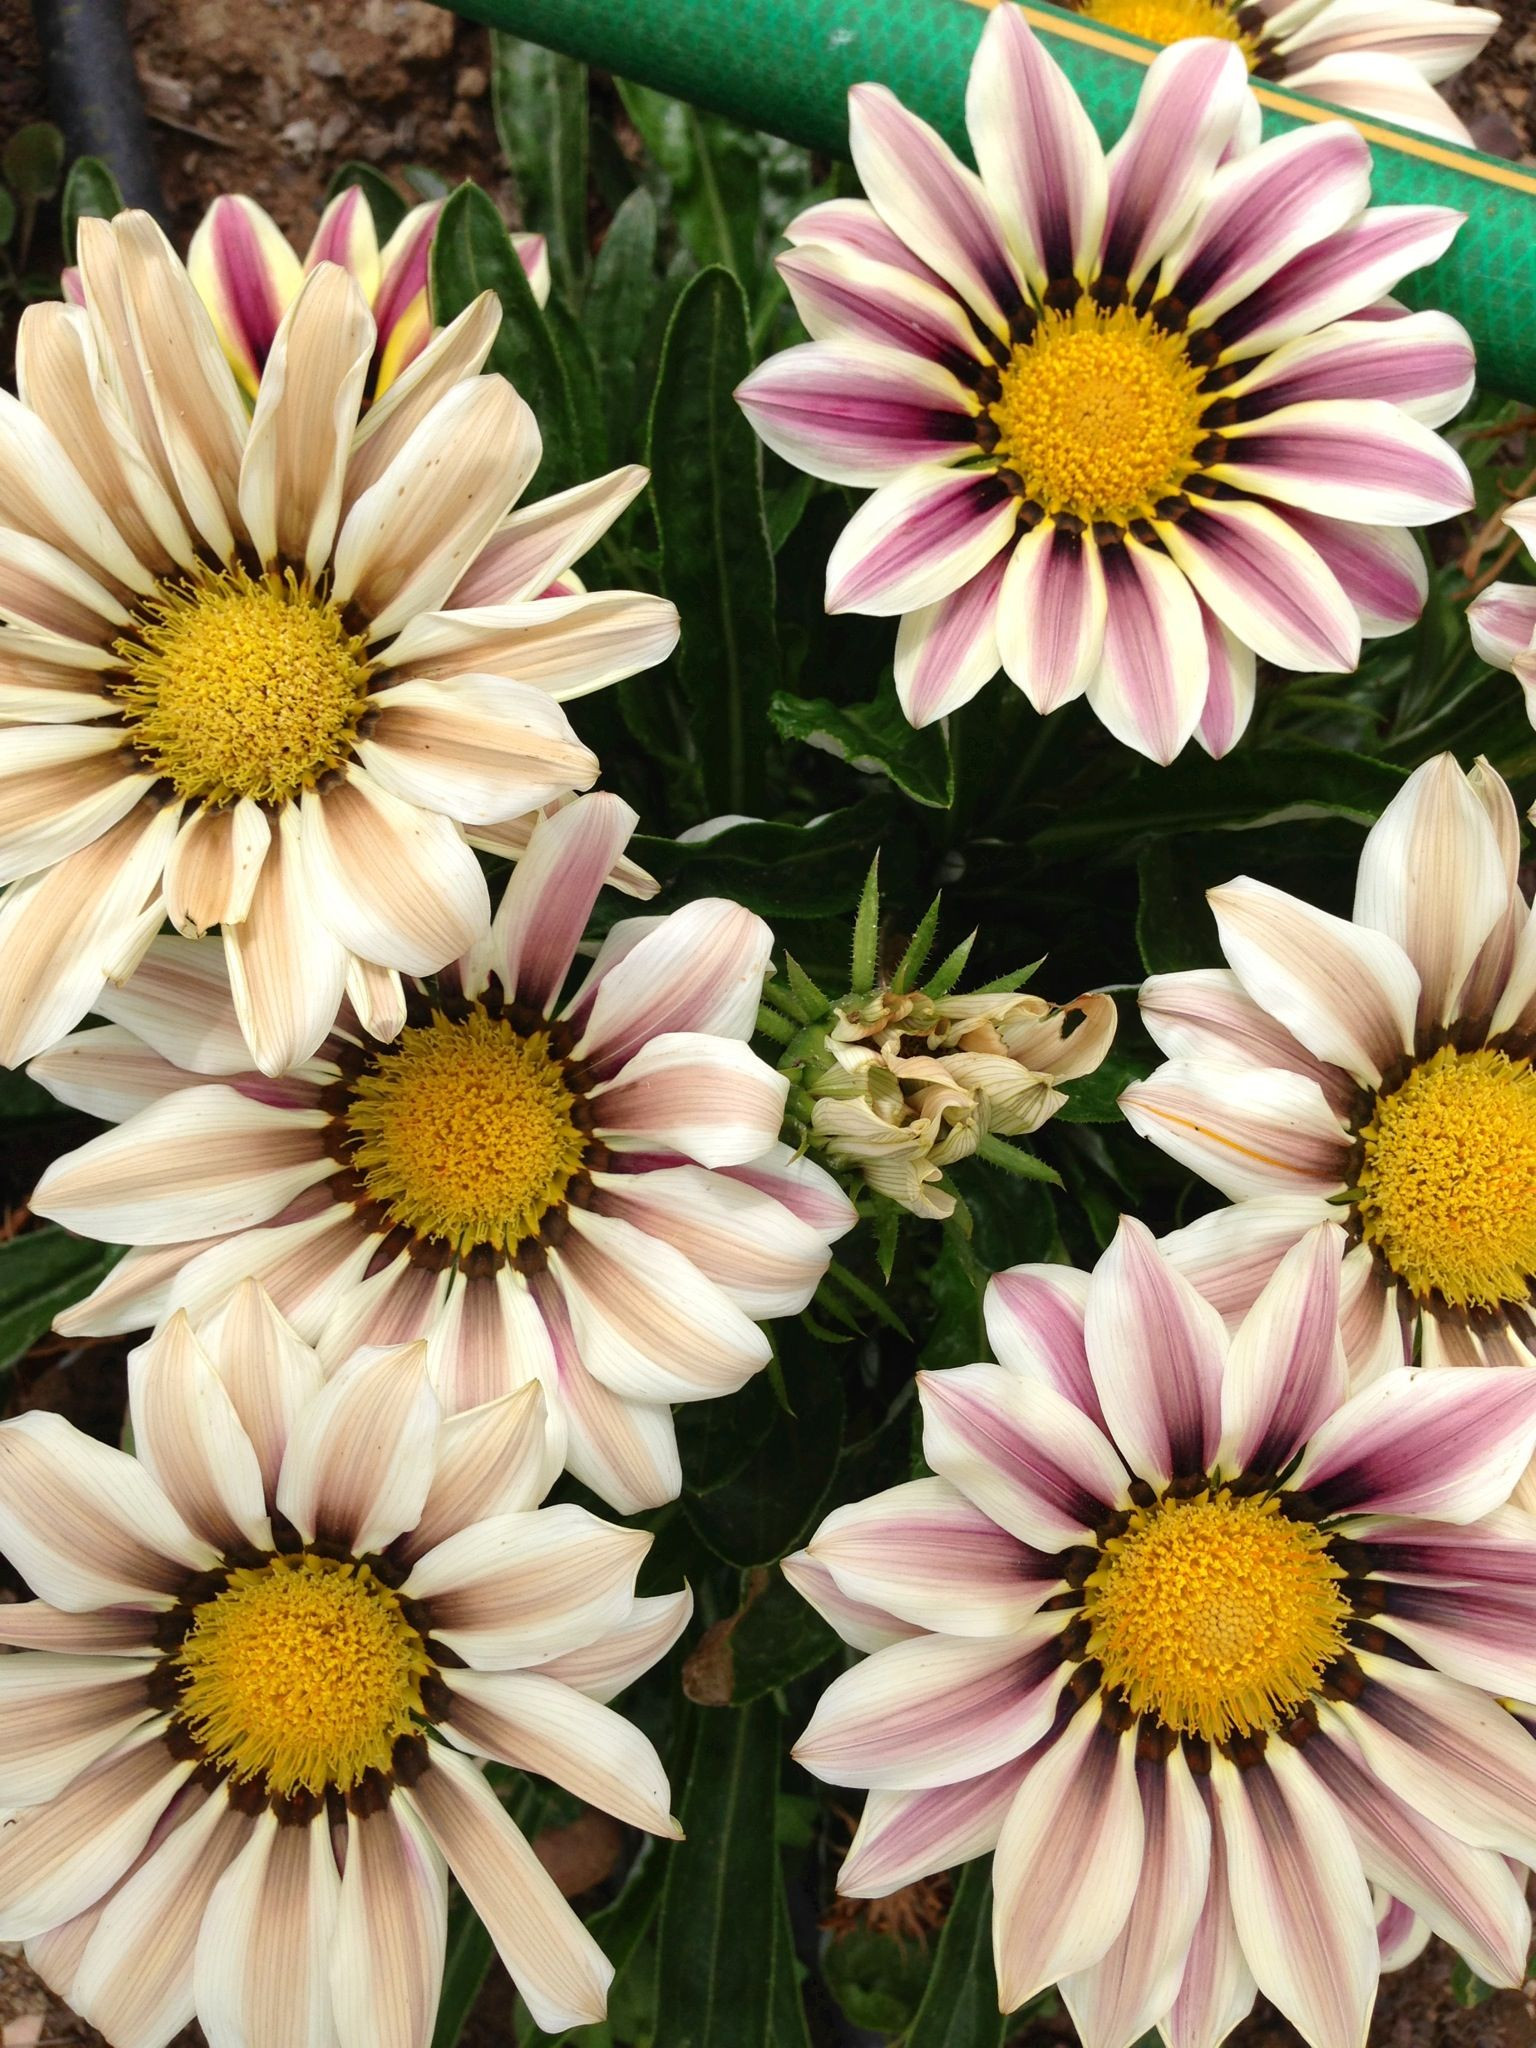 African Daisy Flowers from my garden